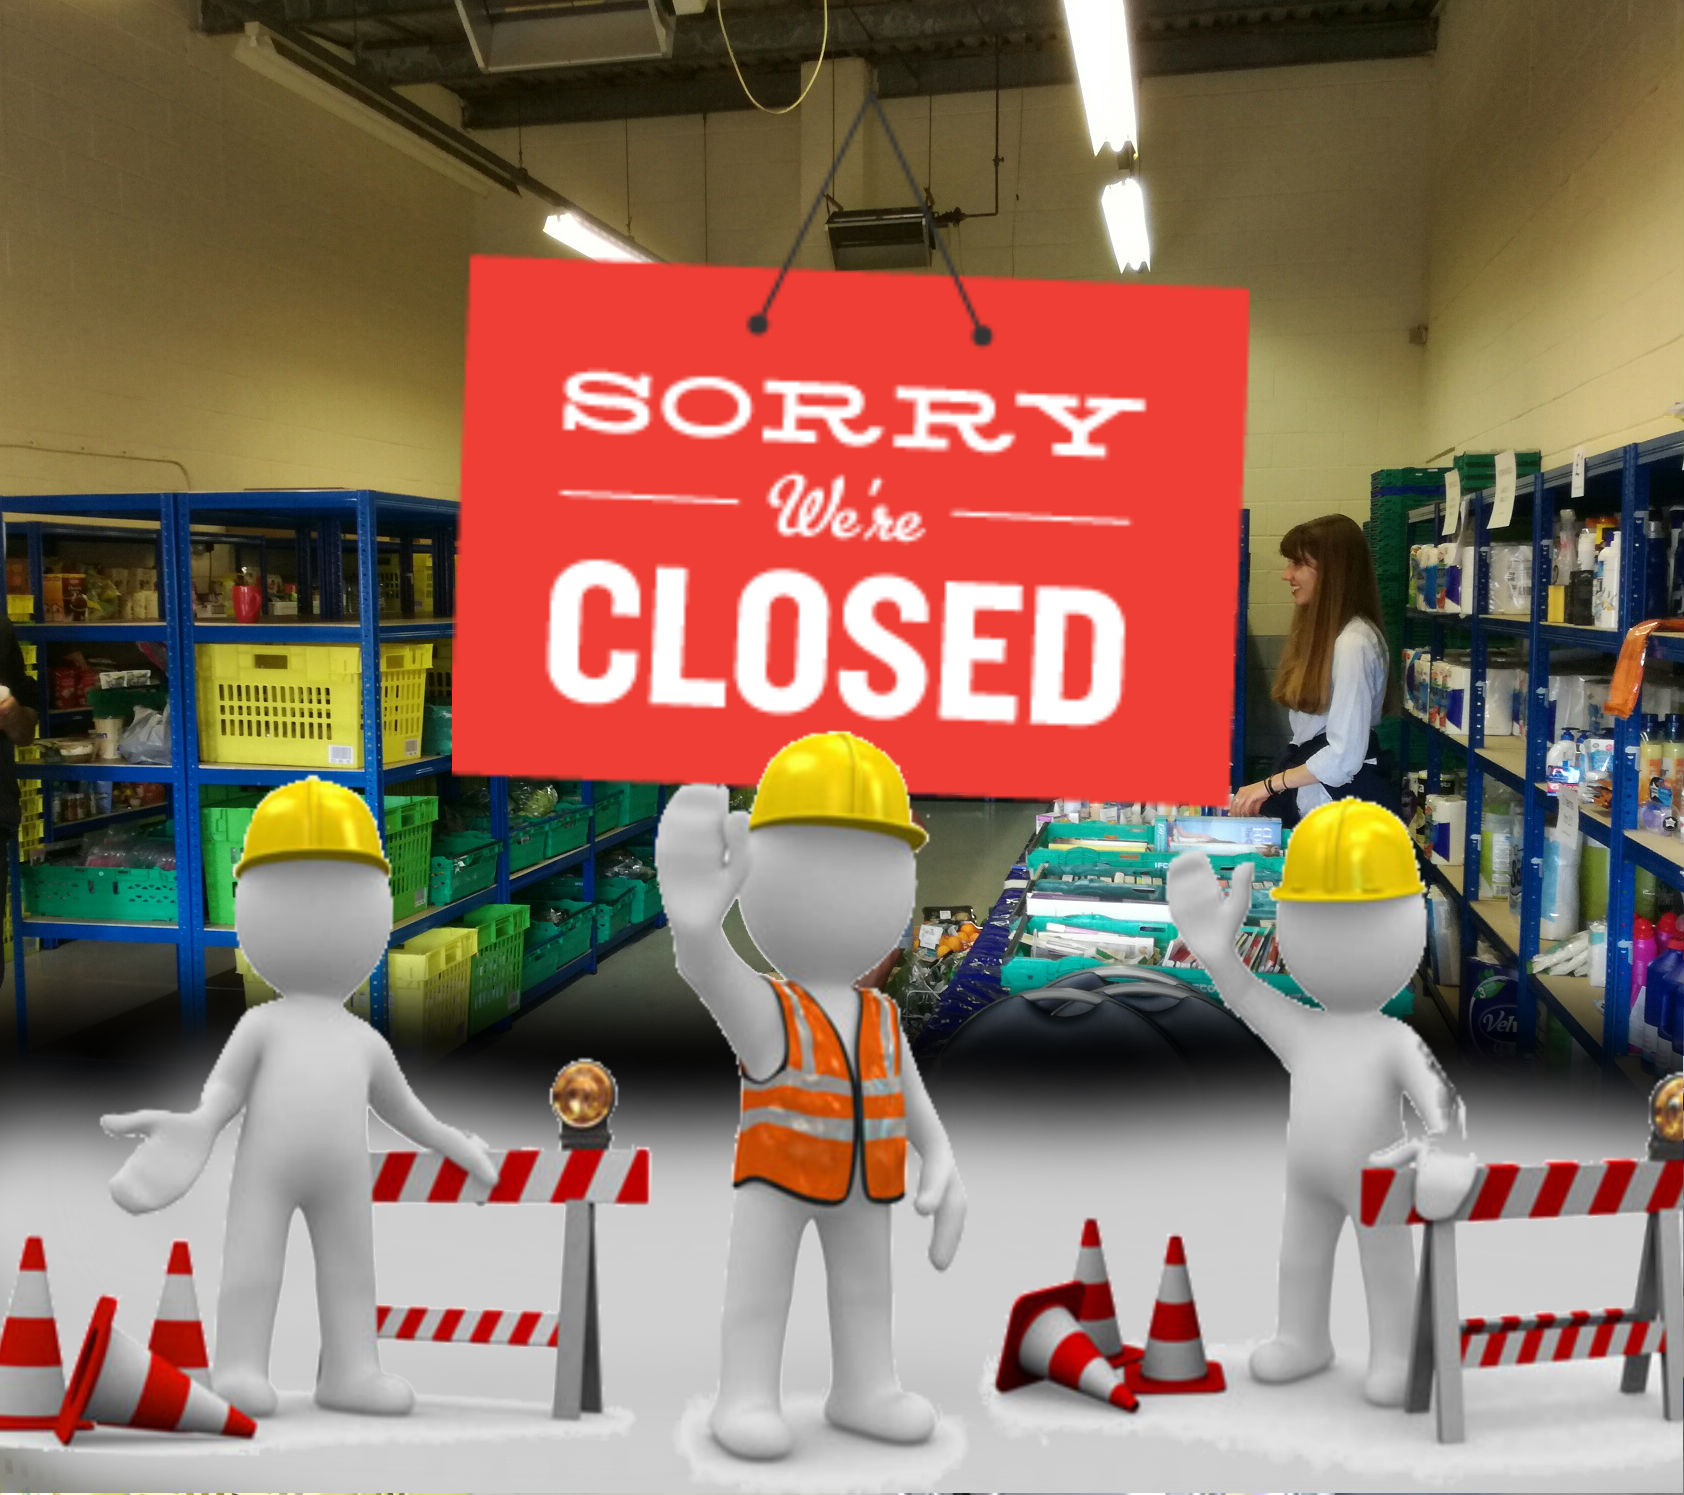 Sharehouse Closed for Maintenance